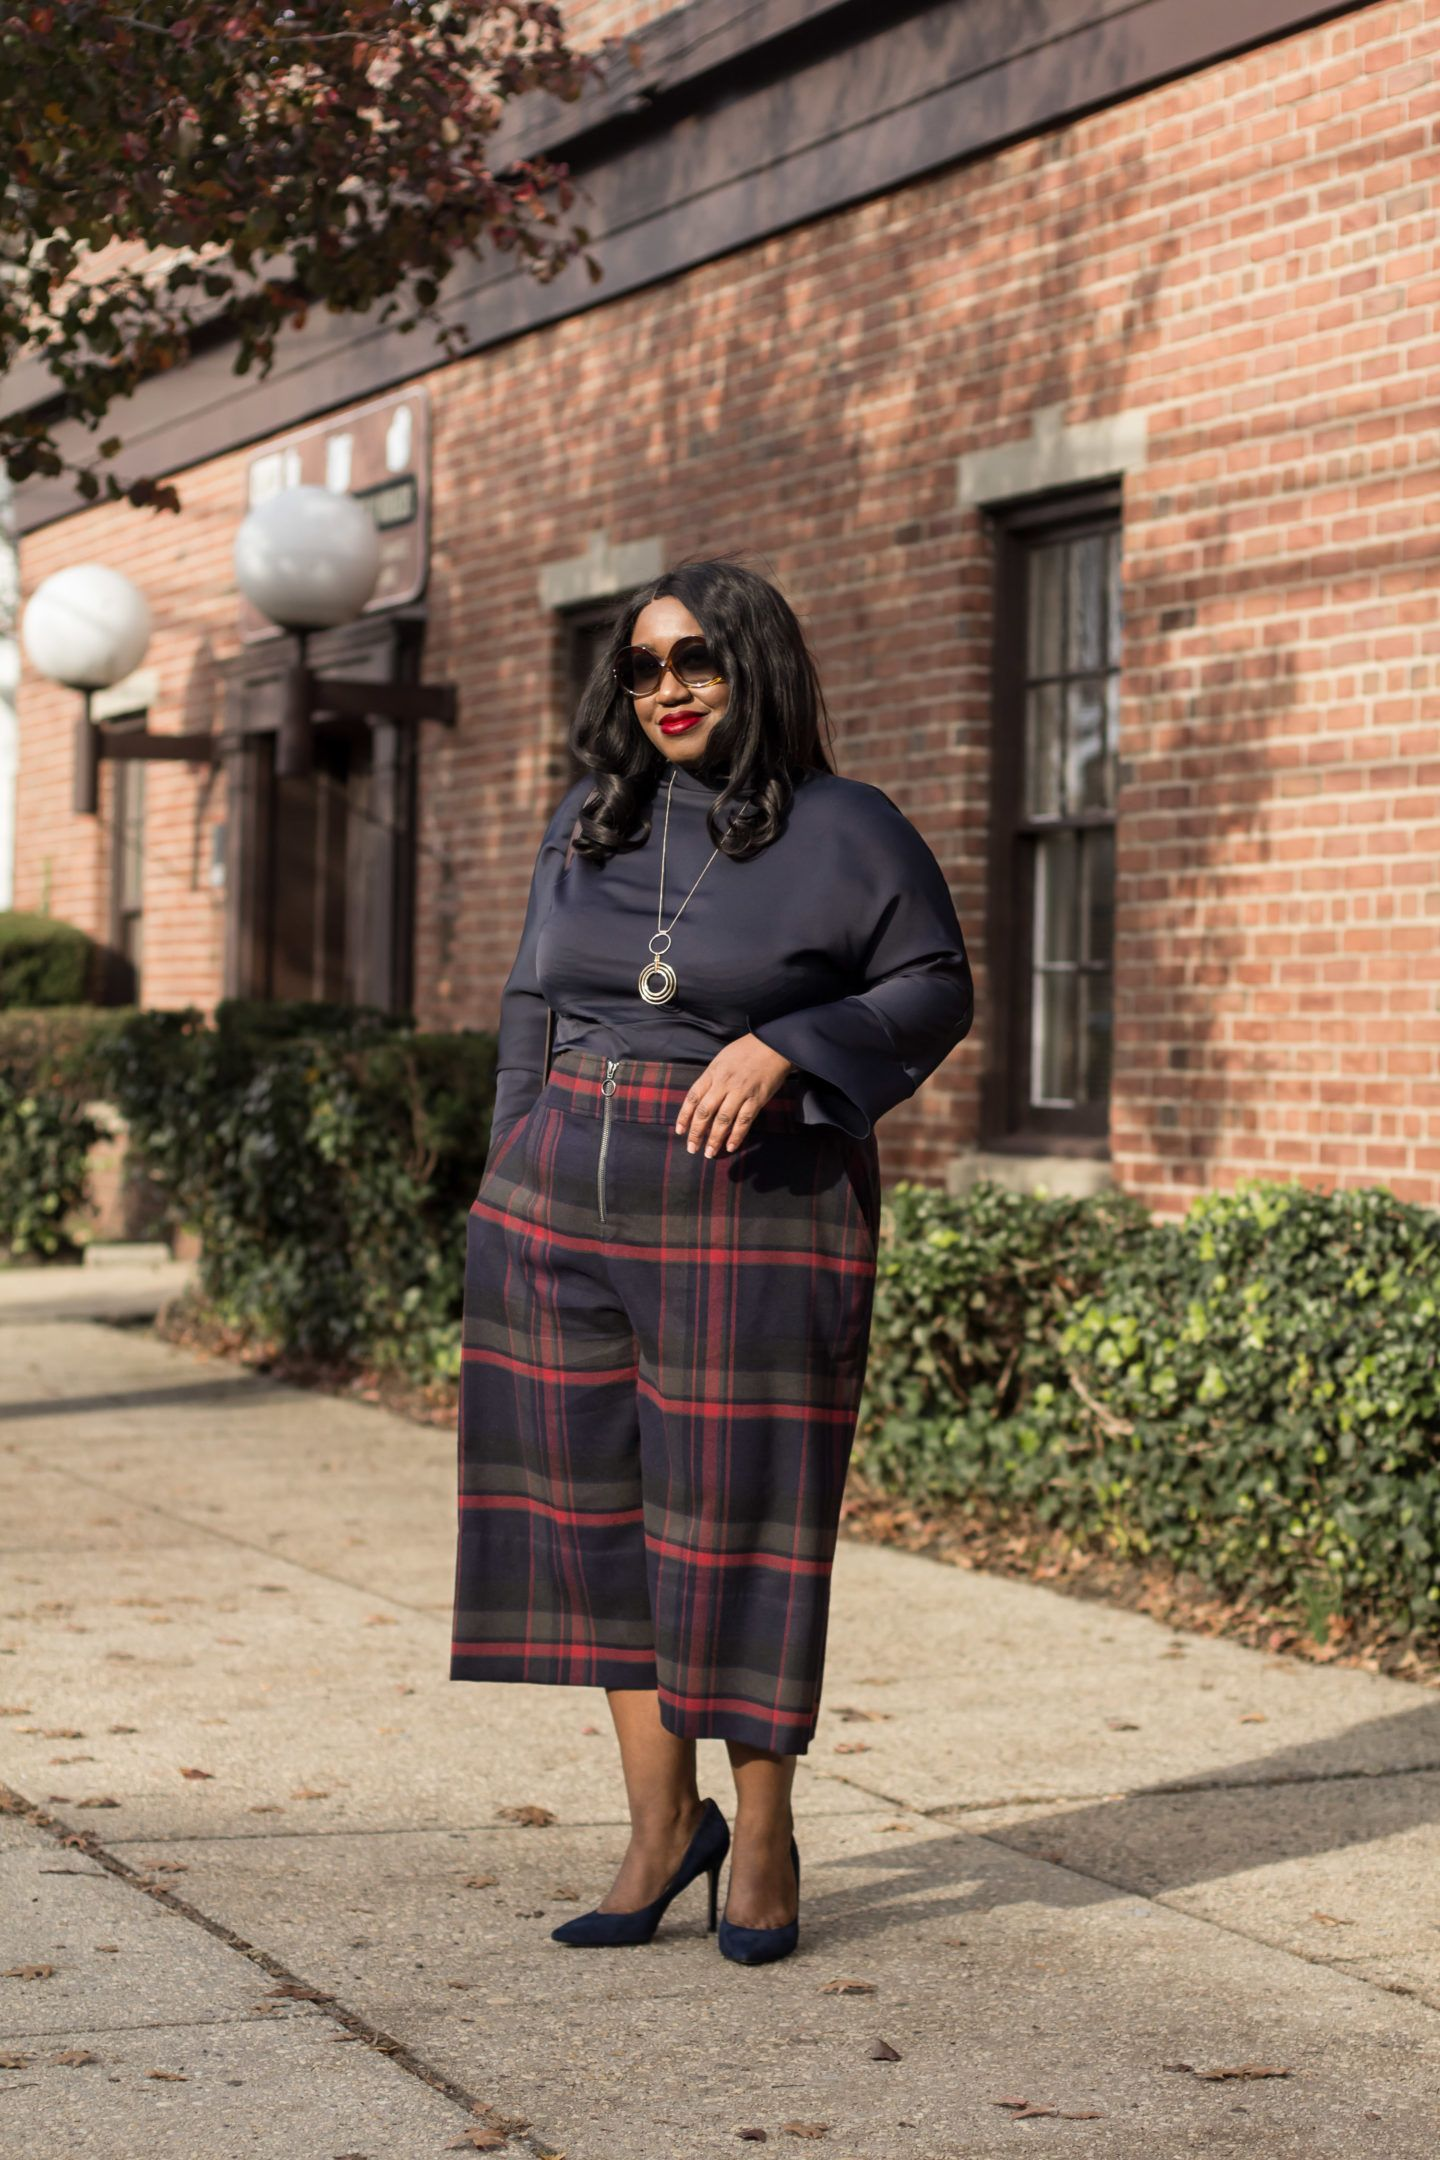 7a01a3cb55160 Plus Size Plaid Outfit • Plus Size Fashion • Plus Size Plaid Options for  Fall • Shapely Chic Sheri  plussize  plussizefashion  style   styleinspiration  ootd ...